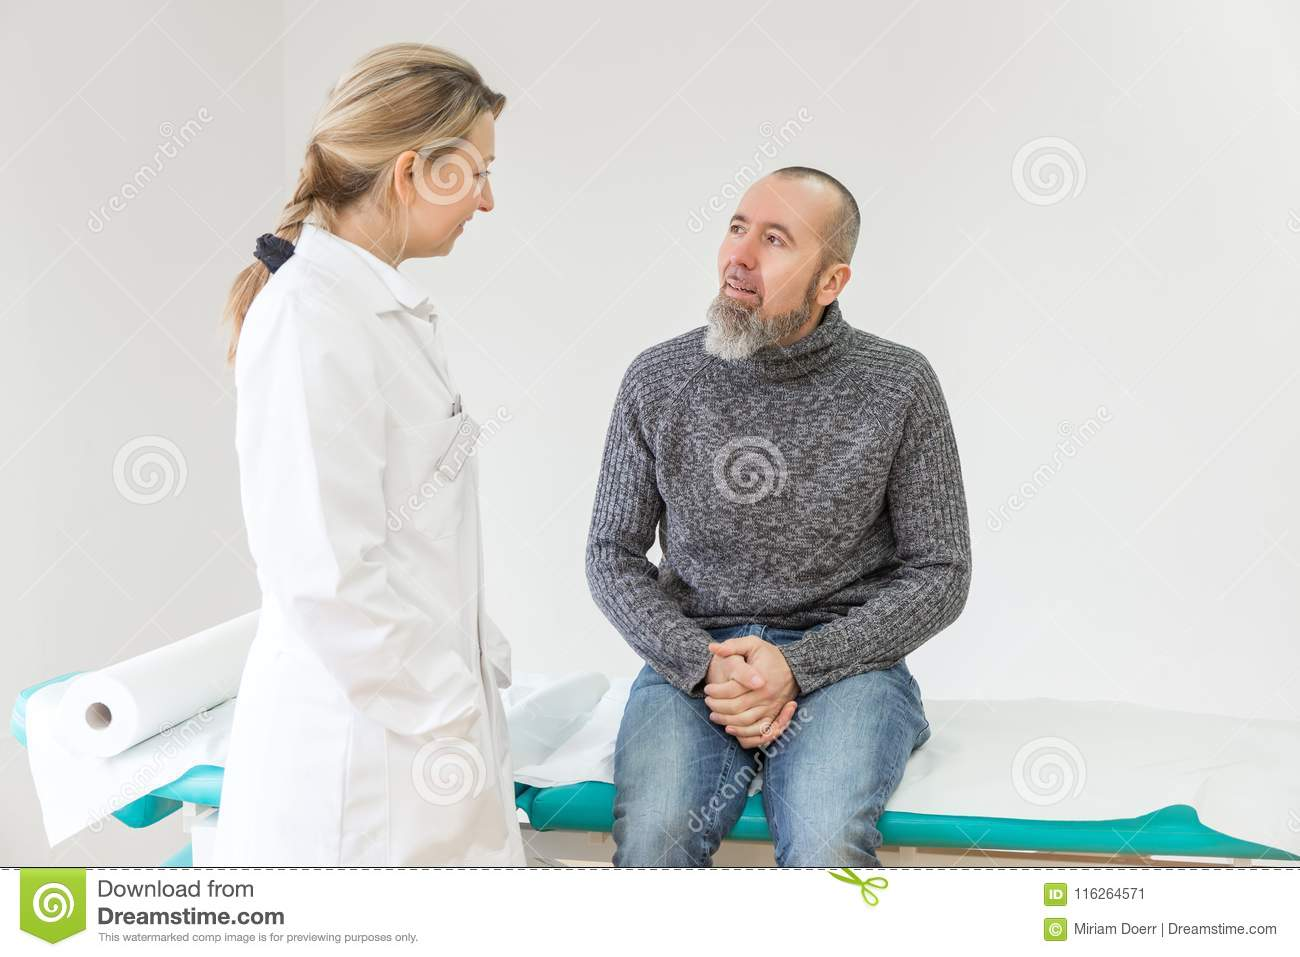 Female doctor is having a consultation